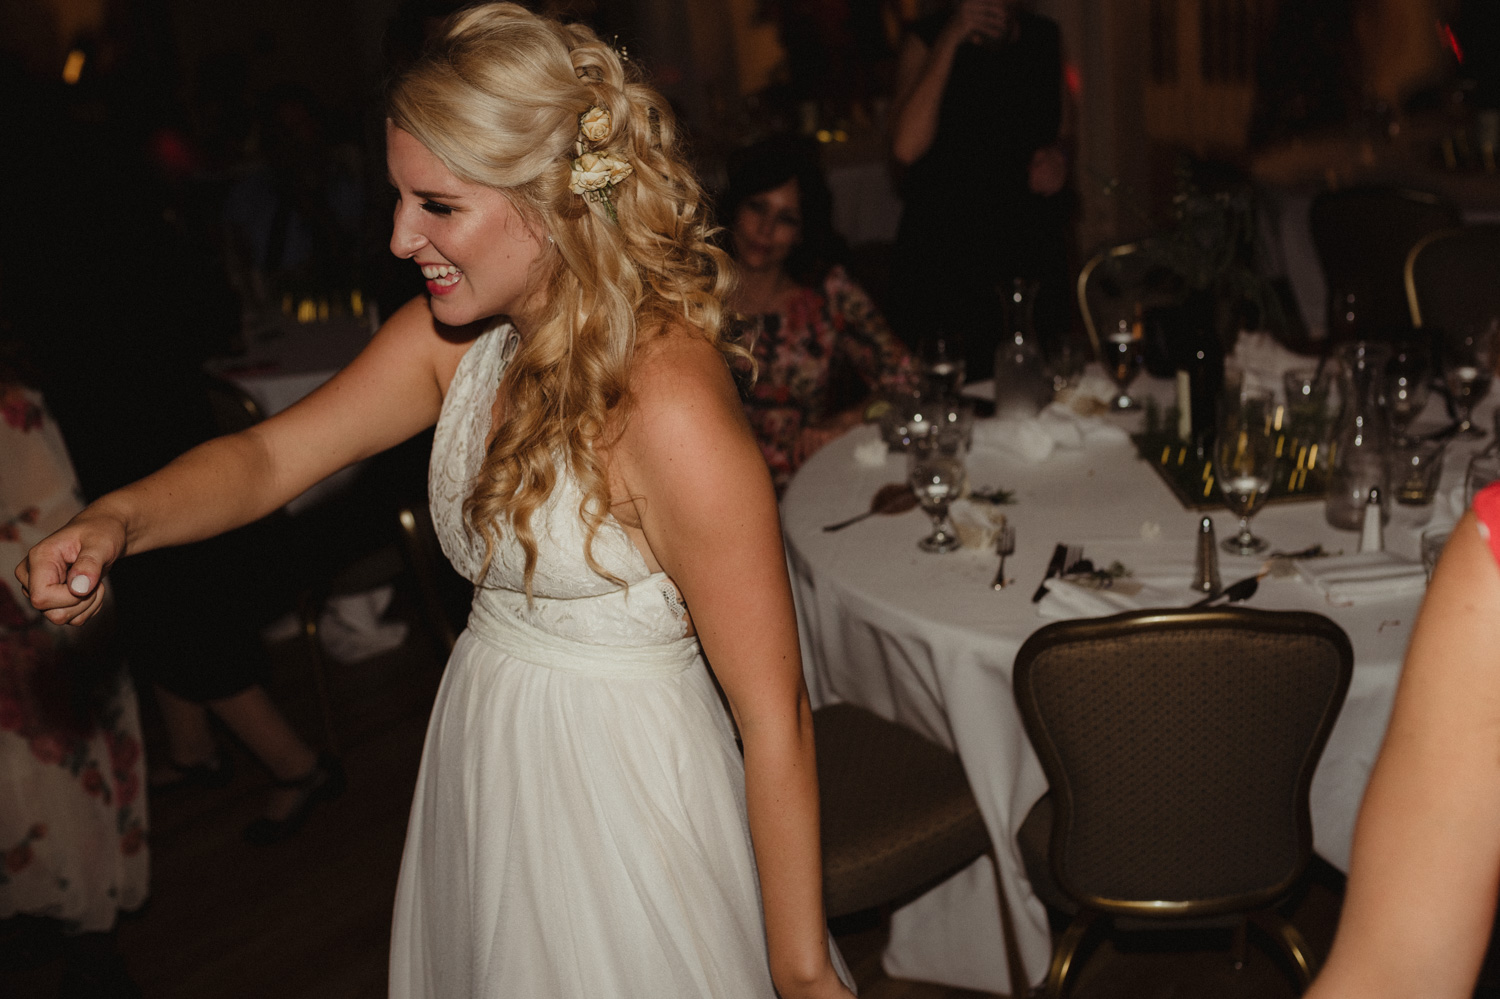 Wedgewood Sequoia Mansion wedding bride having a blast photo